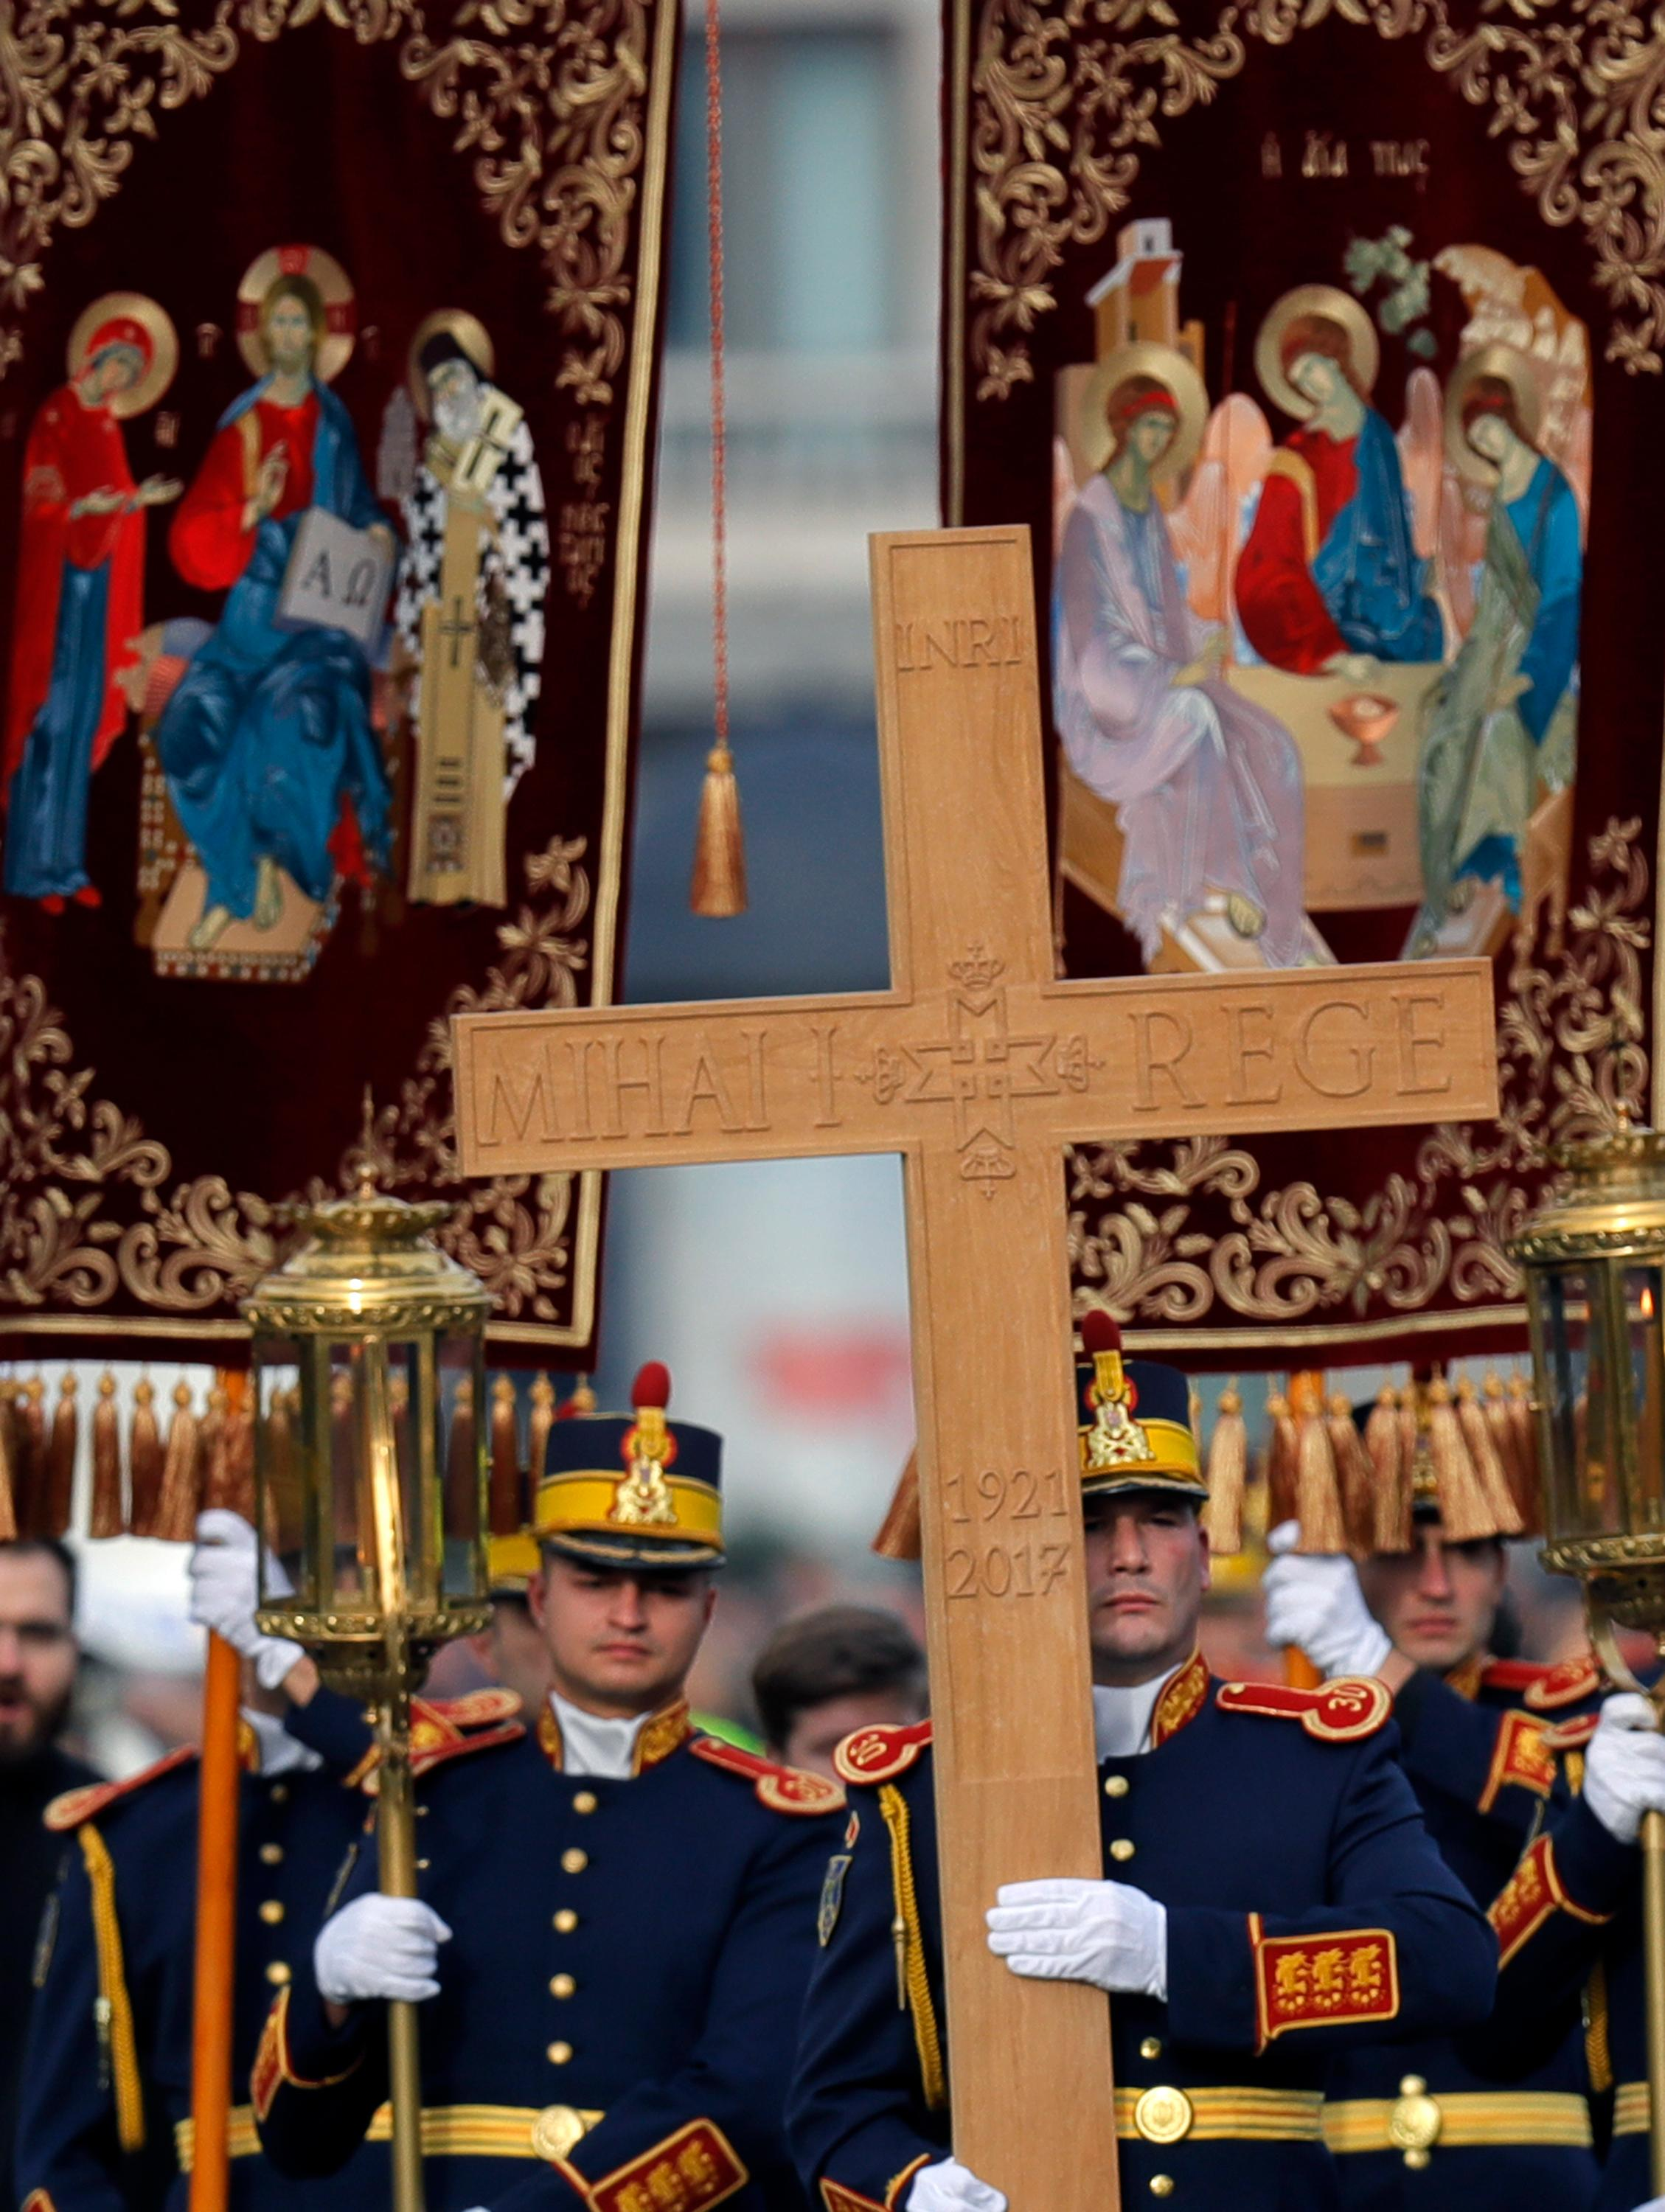 Honor guard soldiers perform during the funeral ceremony in tribute to late Romanian King Michael in Bucharest, Romania, Saturday, Dec.16, 2017. Tens of thousands of Romanians joined the European royals on Saturday to pay their respects to late King Michael as a state funeral got underway. Michael, who ruled Romania twice before being forced to abdicate by the communists in 1947, died at the age of 96 in Switzerland this month. (AP Photo/Vadim Ghirda)